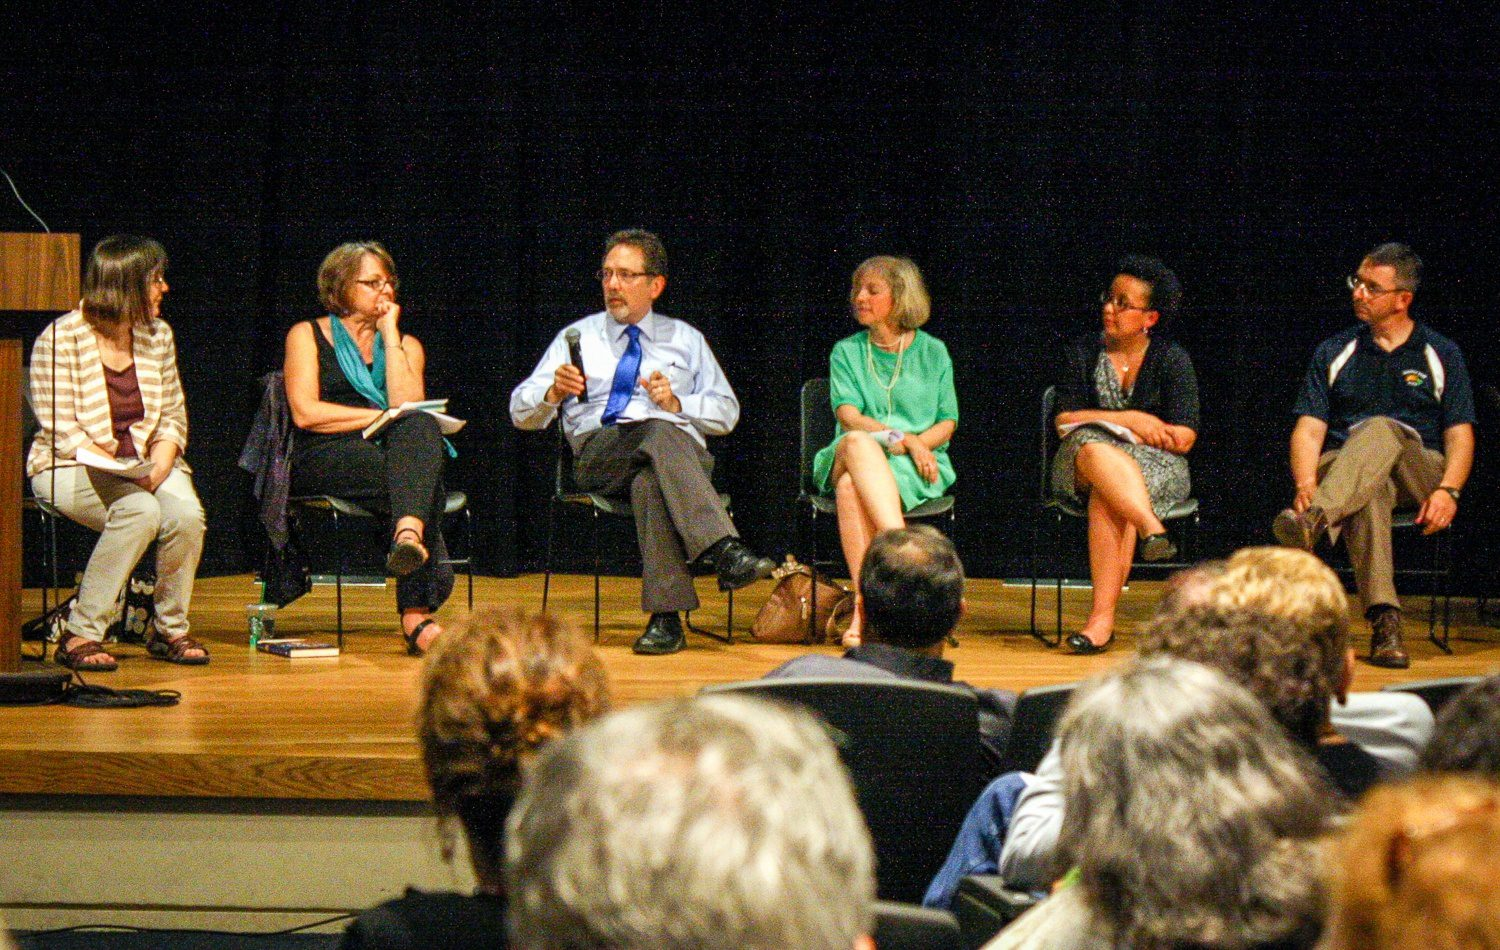 """""""Teaching with Heart"""" book reading in Maryland with contributors to the book: Megan Scribner, Kathleen Glaser, Dennis Huffman, Christine Intagliata, Rachel Willis, and Liam Corley. (Missing from the picture: Jamie Raskin.)"""